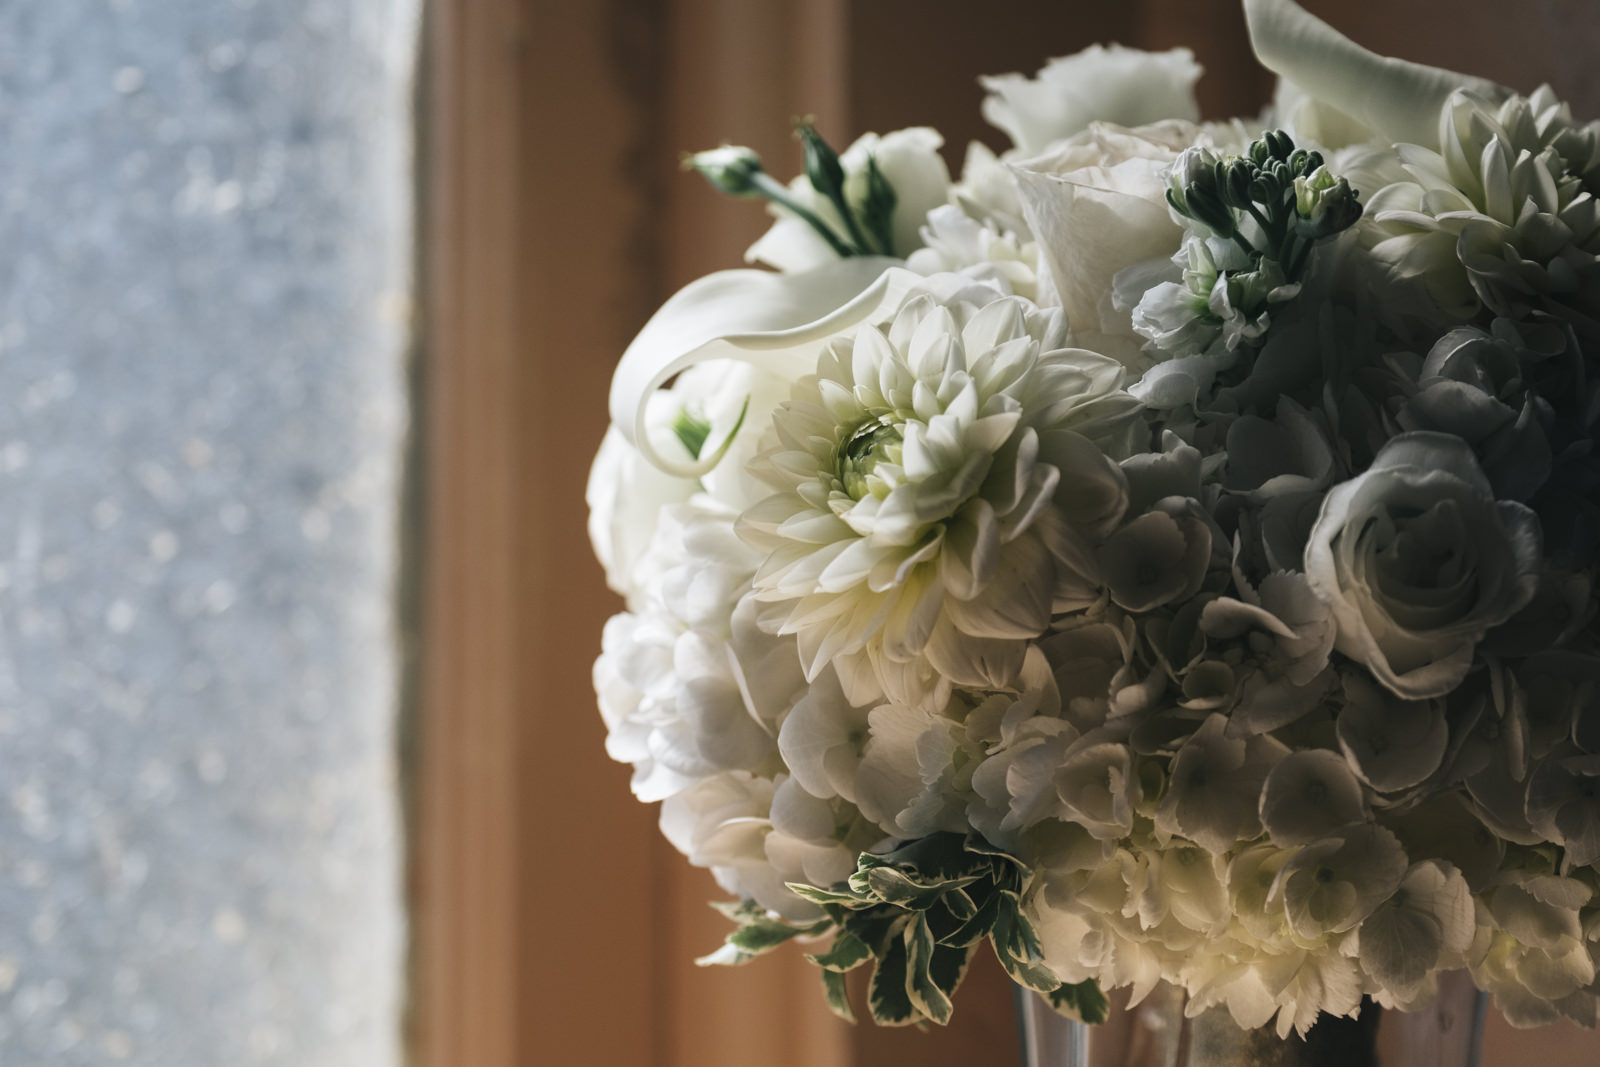 Flowers from Bailey's Buds and Blooms sit in the windowsill before Marblehead, Ohio wedding.